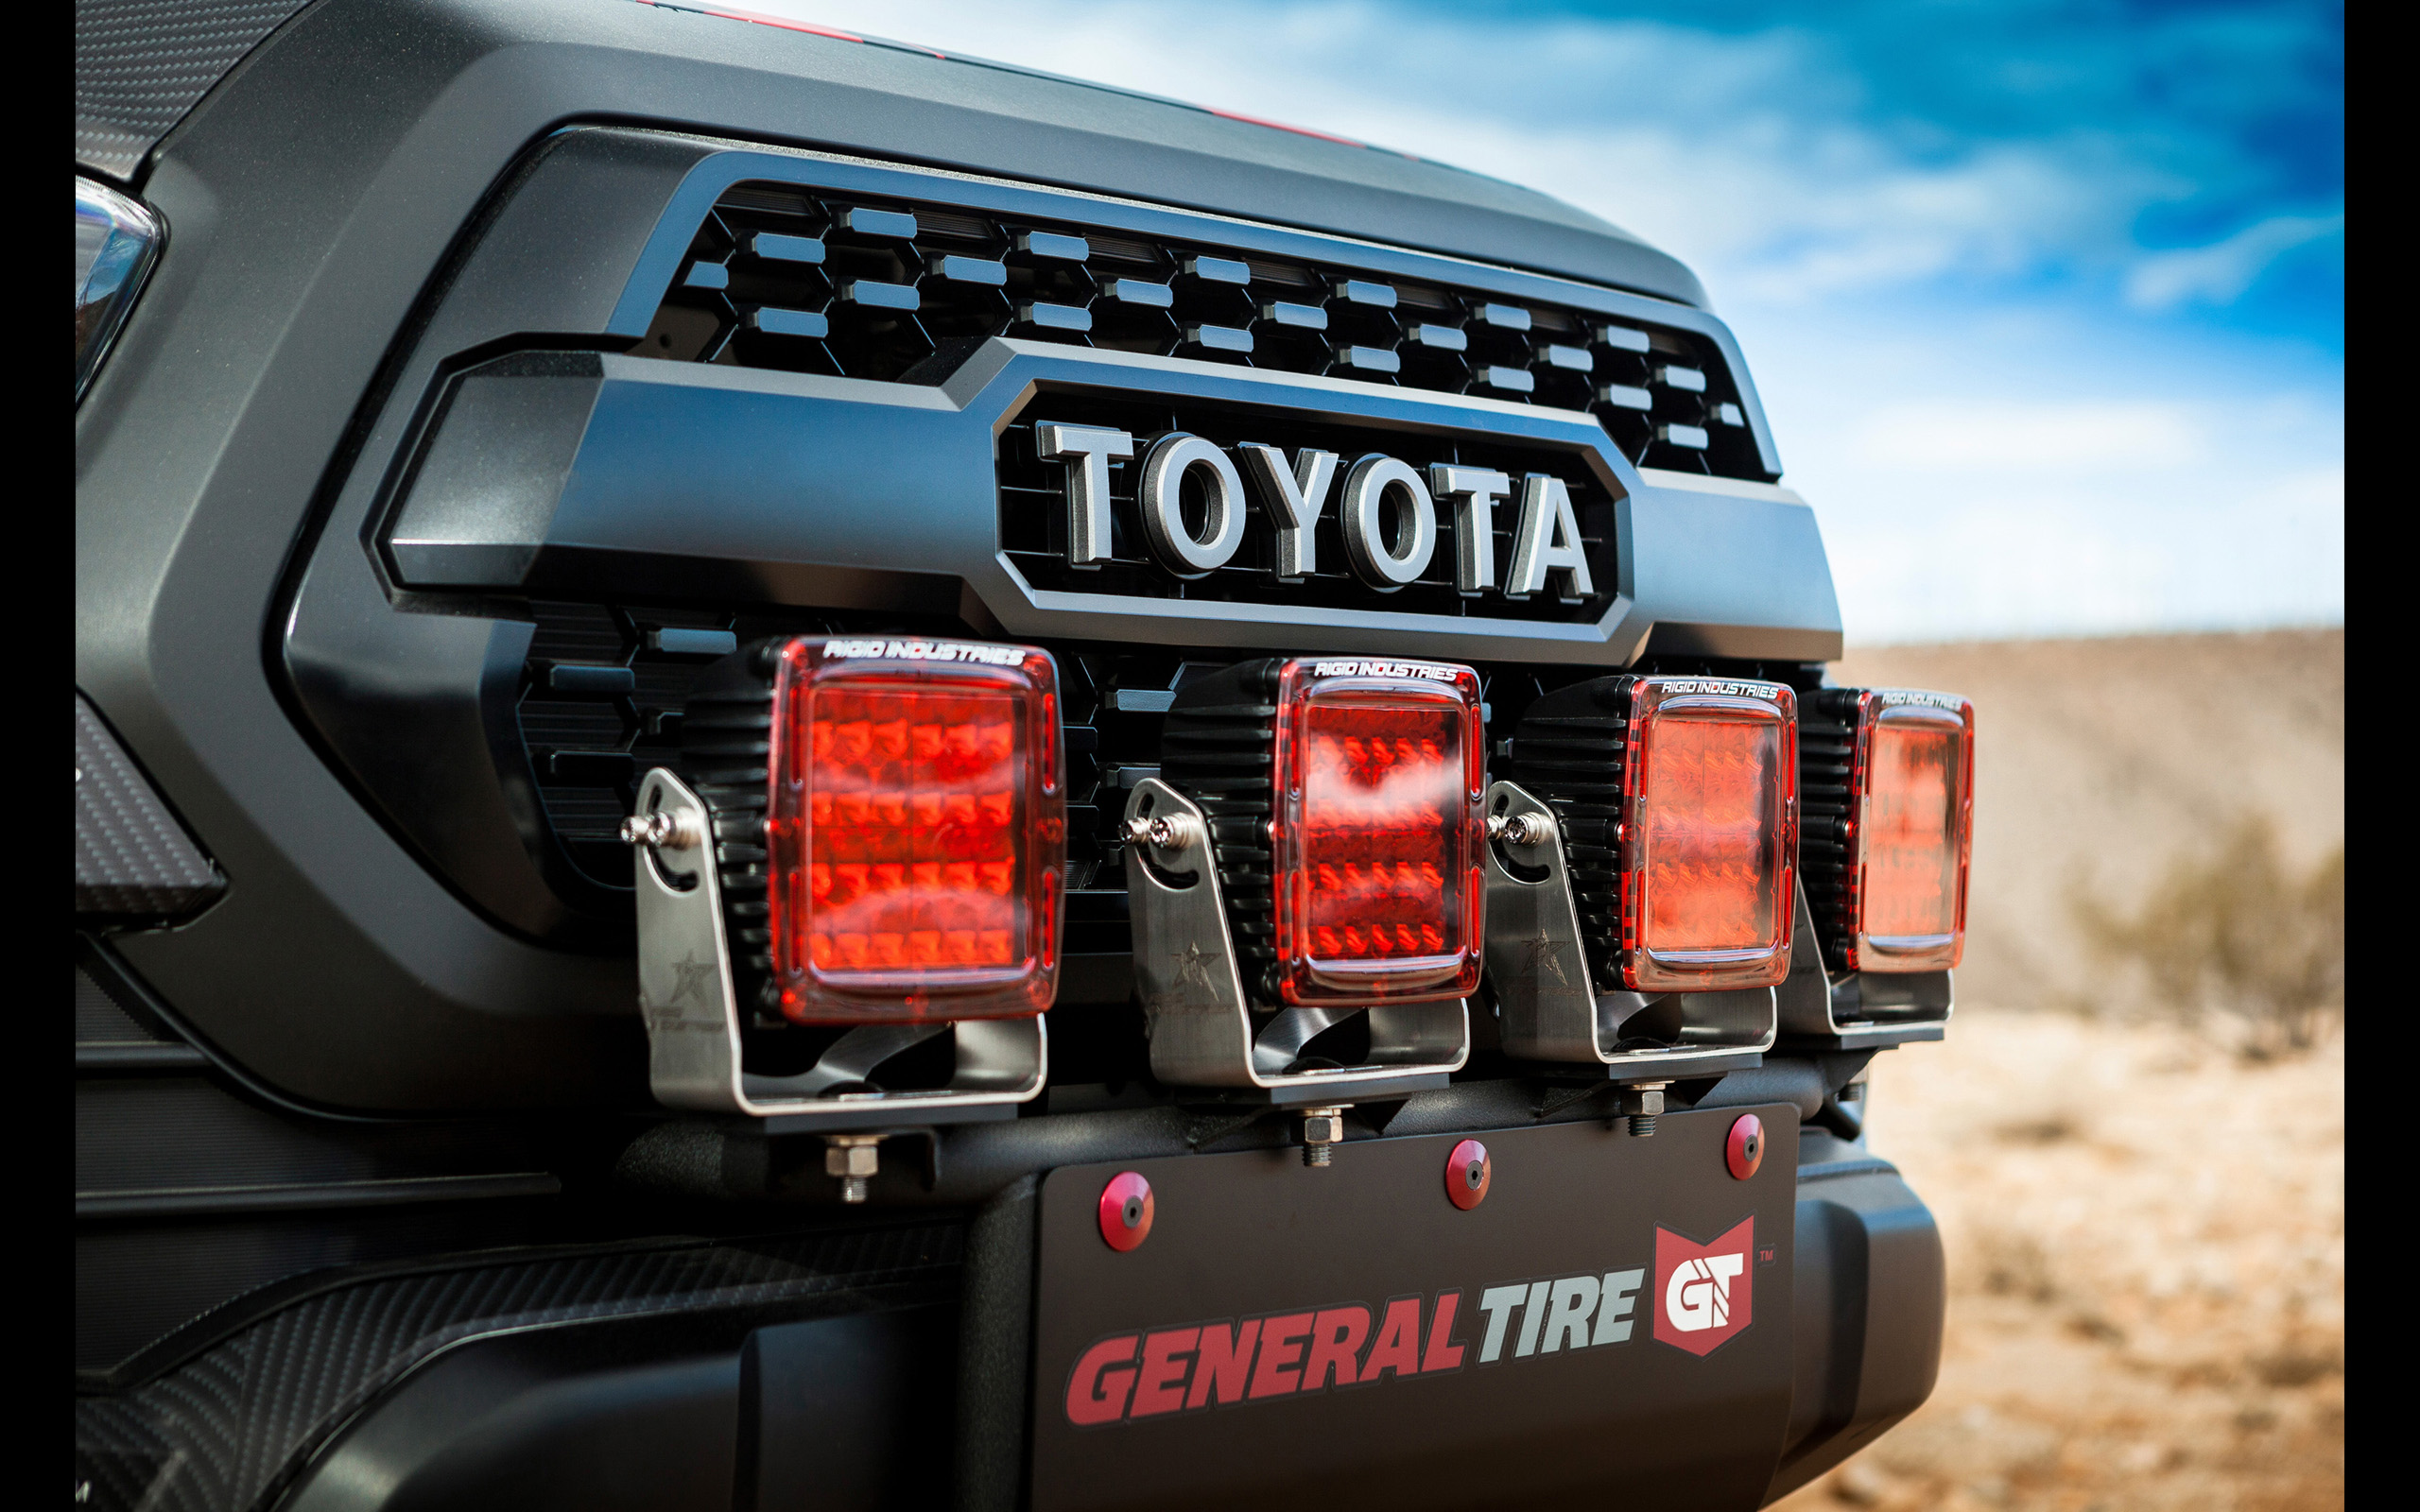 2017 Toyota Tacoma Rigid Industries , HD Wallpaper & Backgrounds